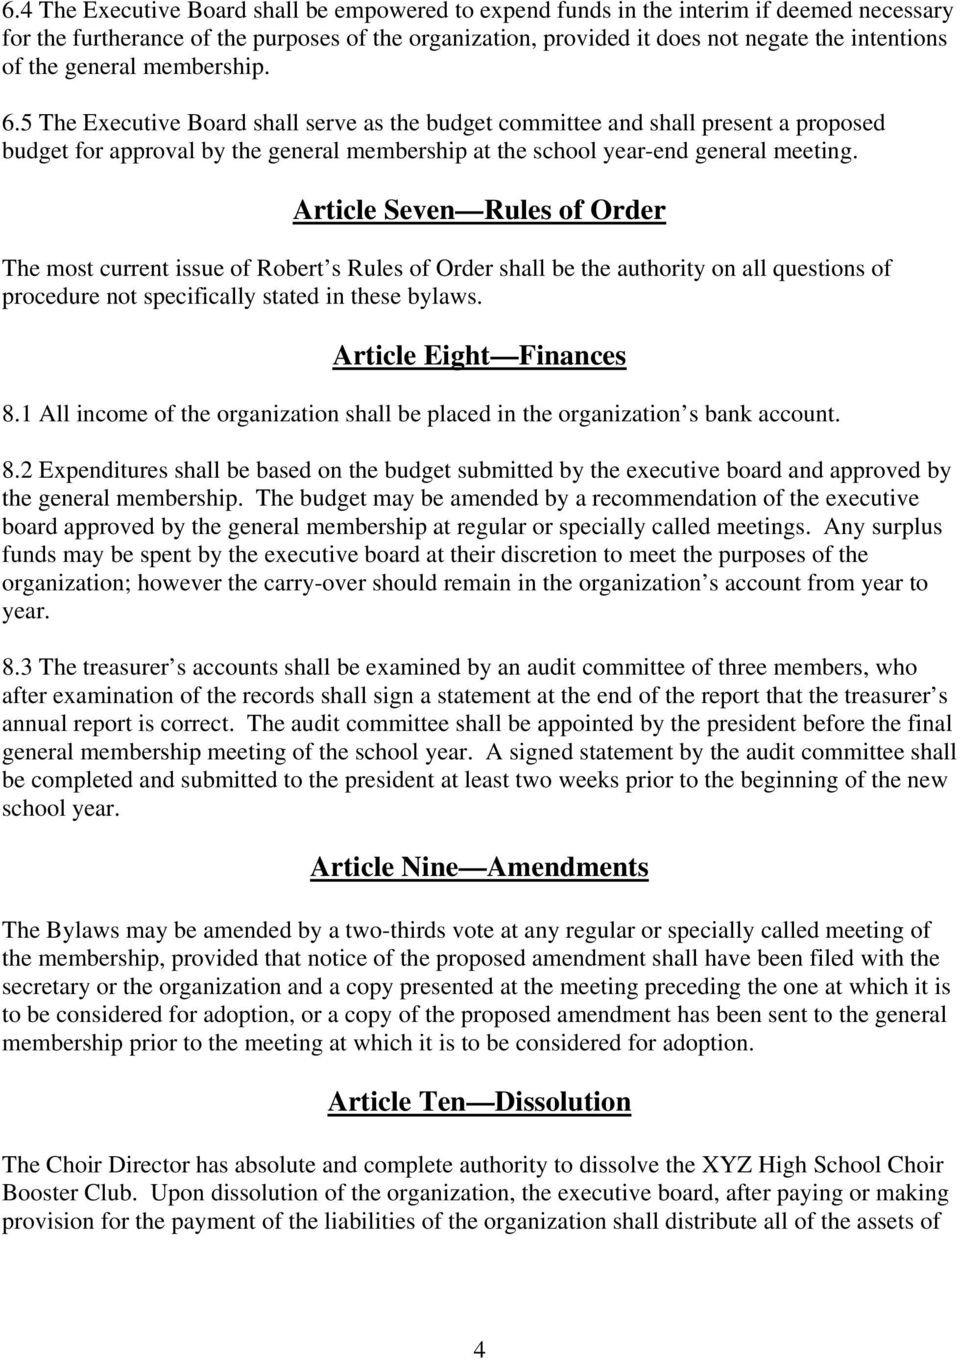 Article Seven Rules of Order The most current issue of Robert s Rules of Order shall be the authority on all questions of procedure not specifically stated in these bylaws. Article Eight Finances 8.